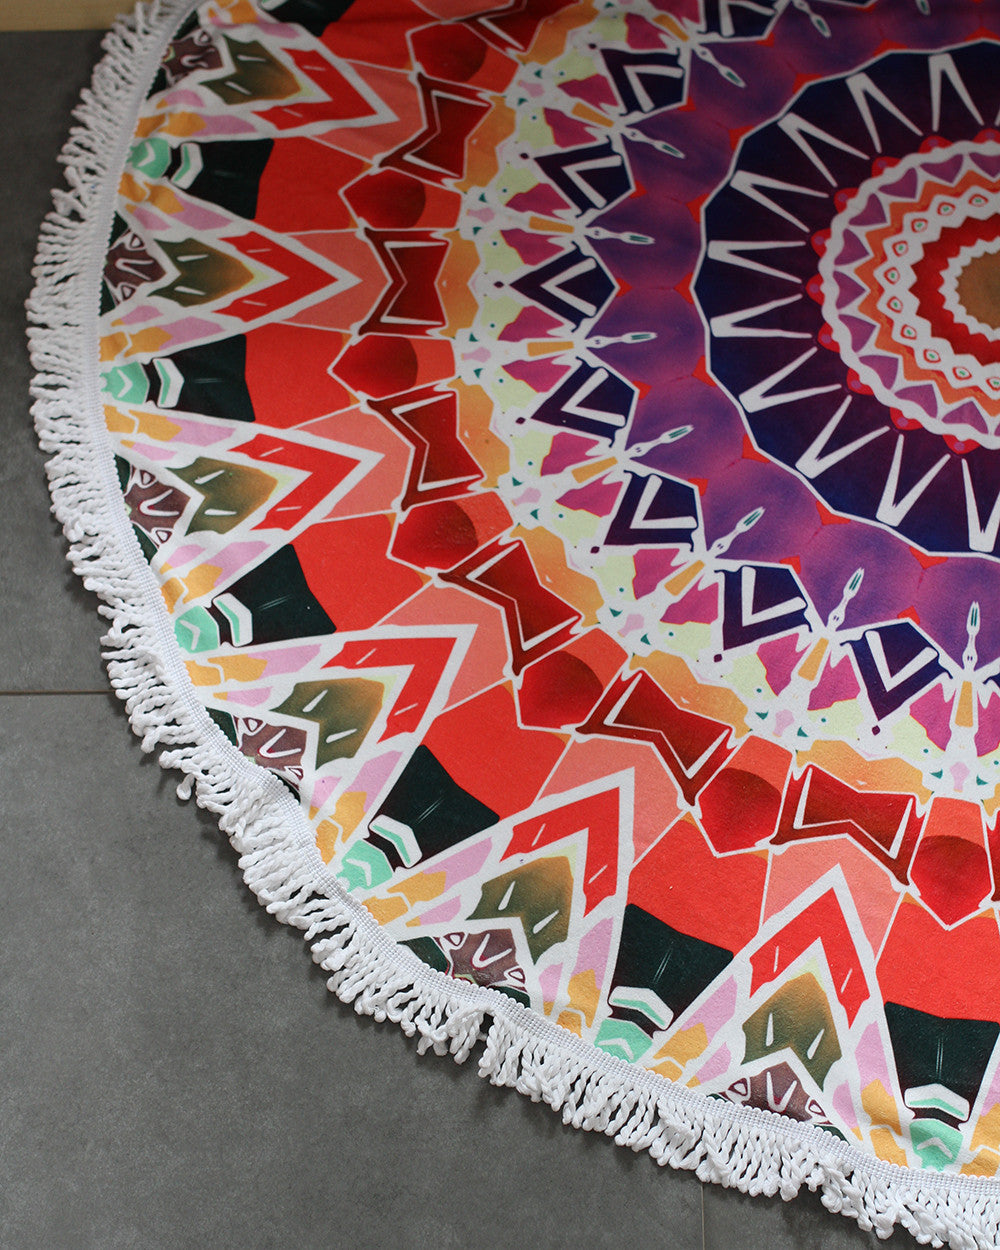 Bohemian Beach Tapestry Mandala Hippie Throw Towel-Red - worthtryit.com